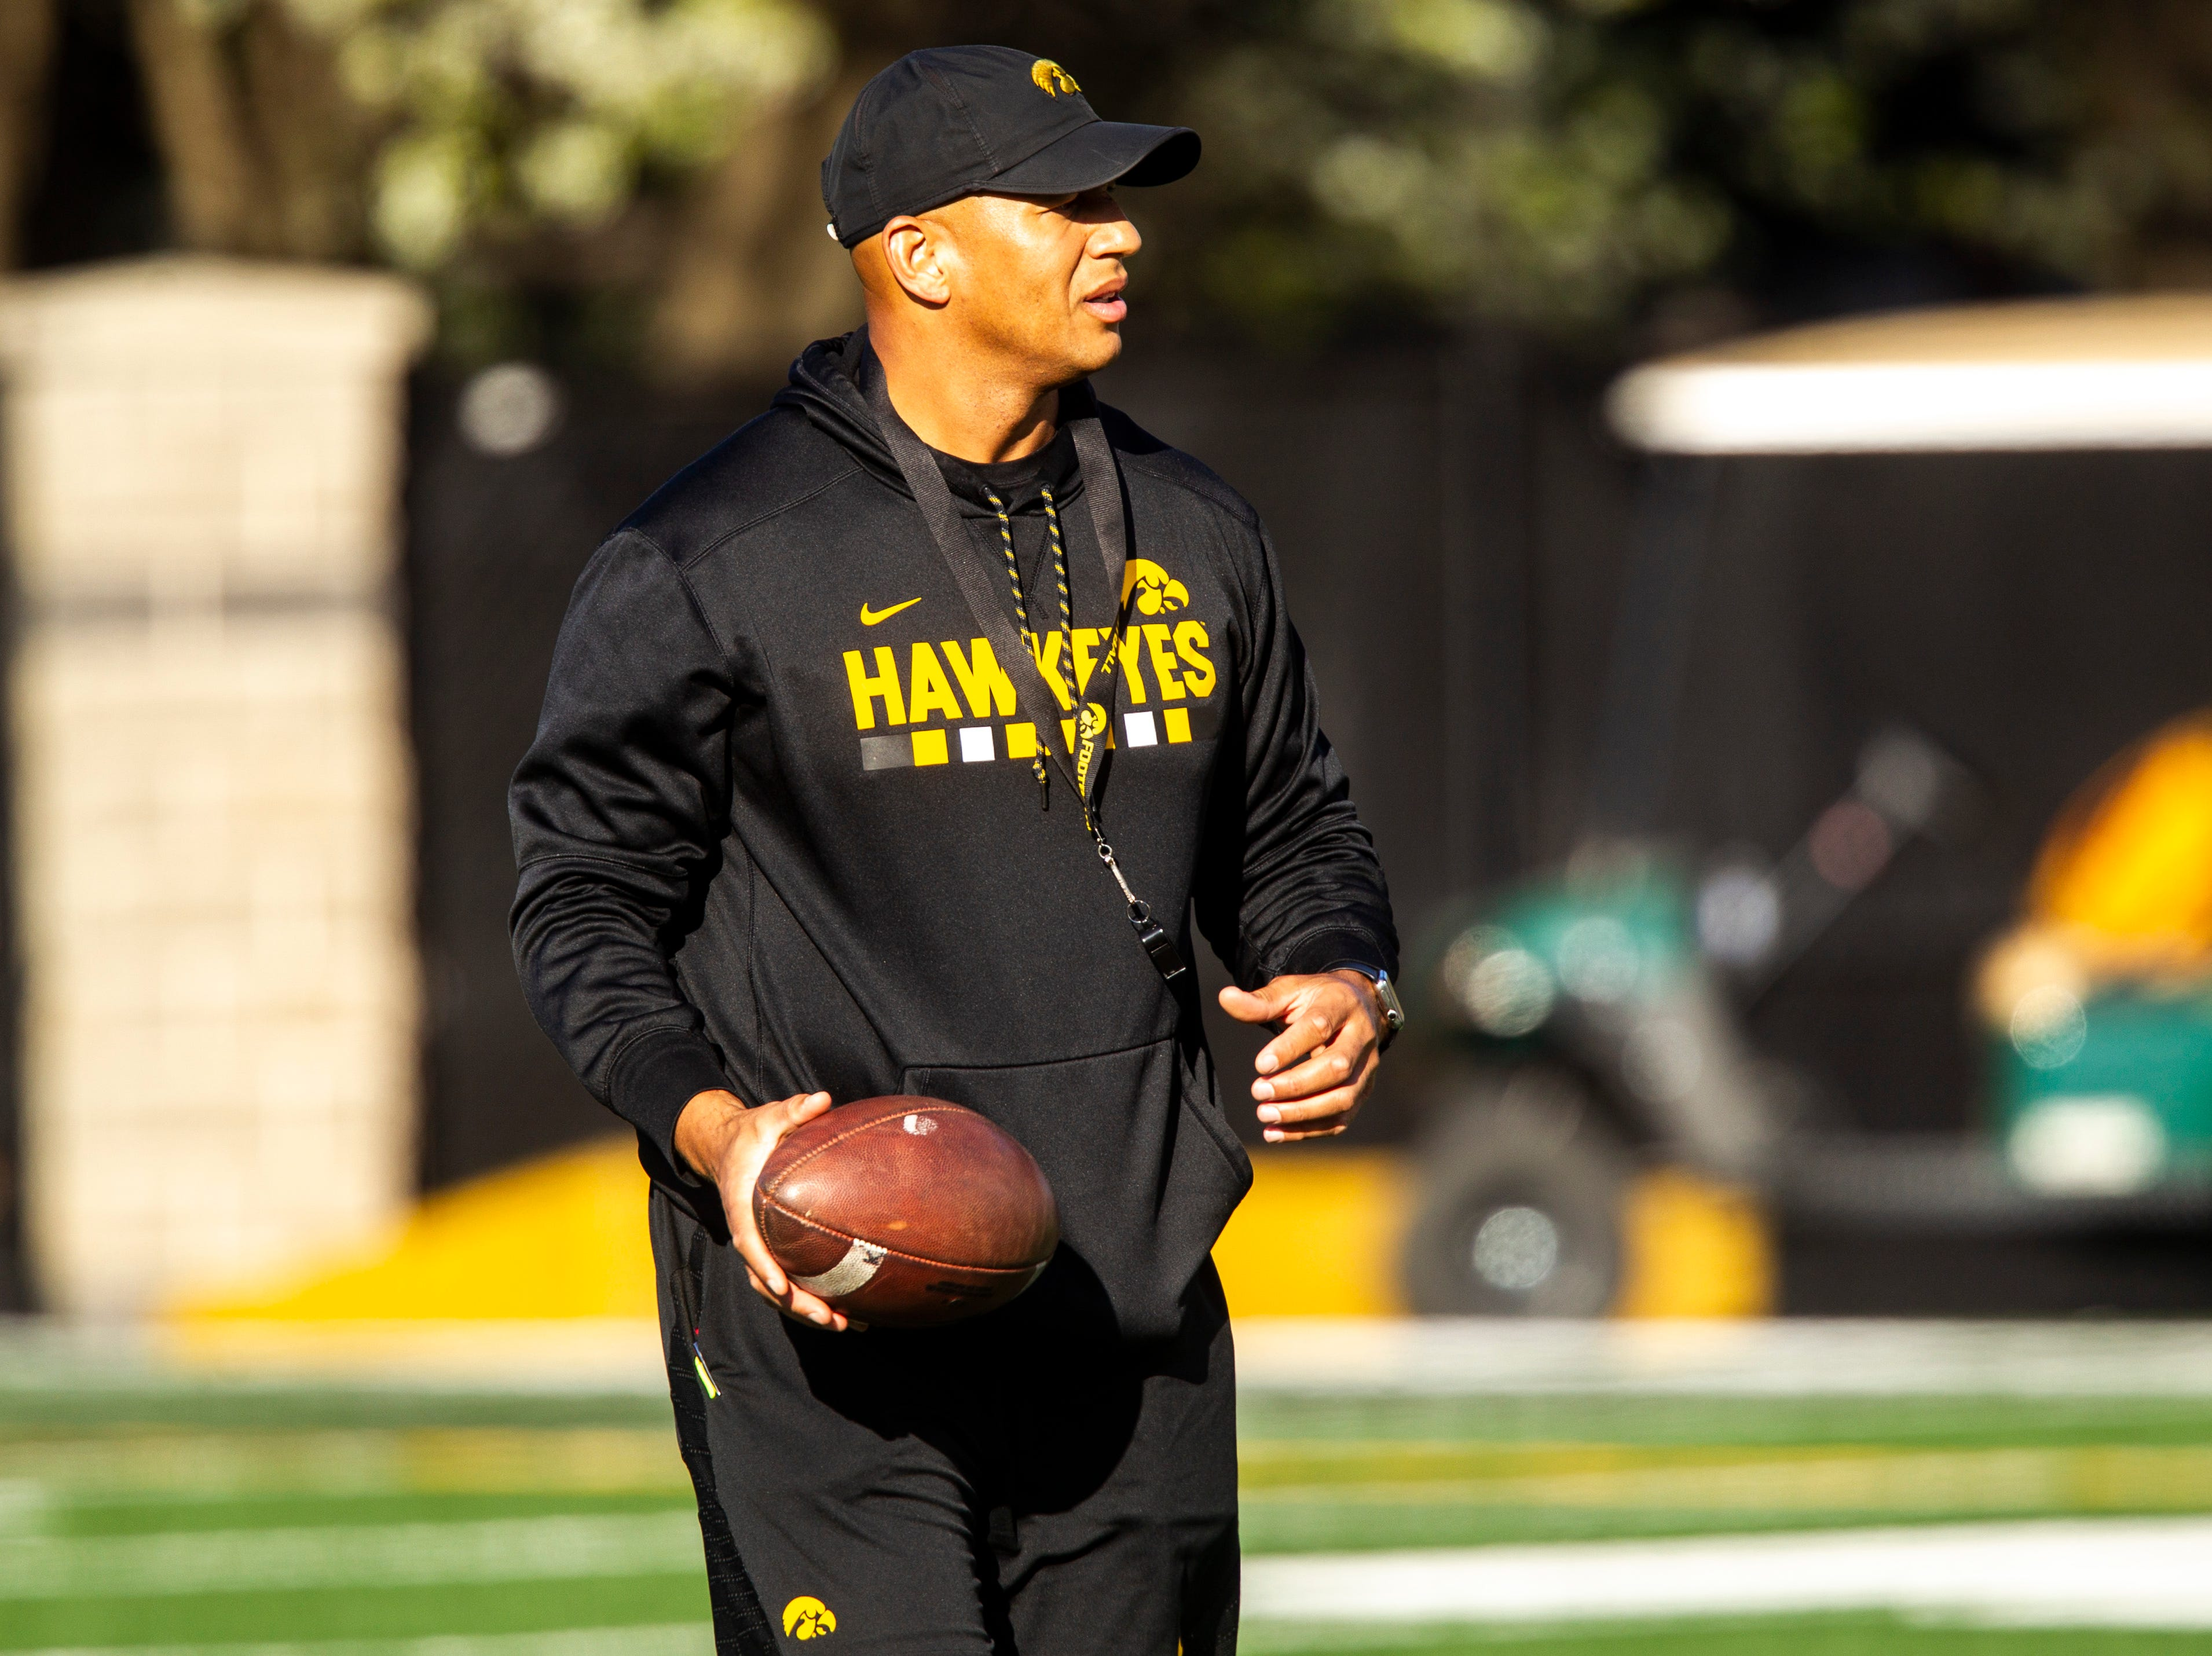 Iowa special teams coordinator LeVar Woods is pictured during the final spring football practice, Friday, April 26, 2019, at the University of Iowa outdoor practice facility in Iowa City, Iowa.